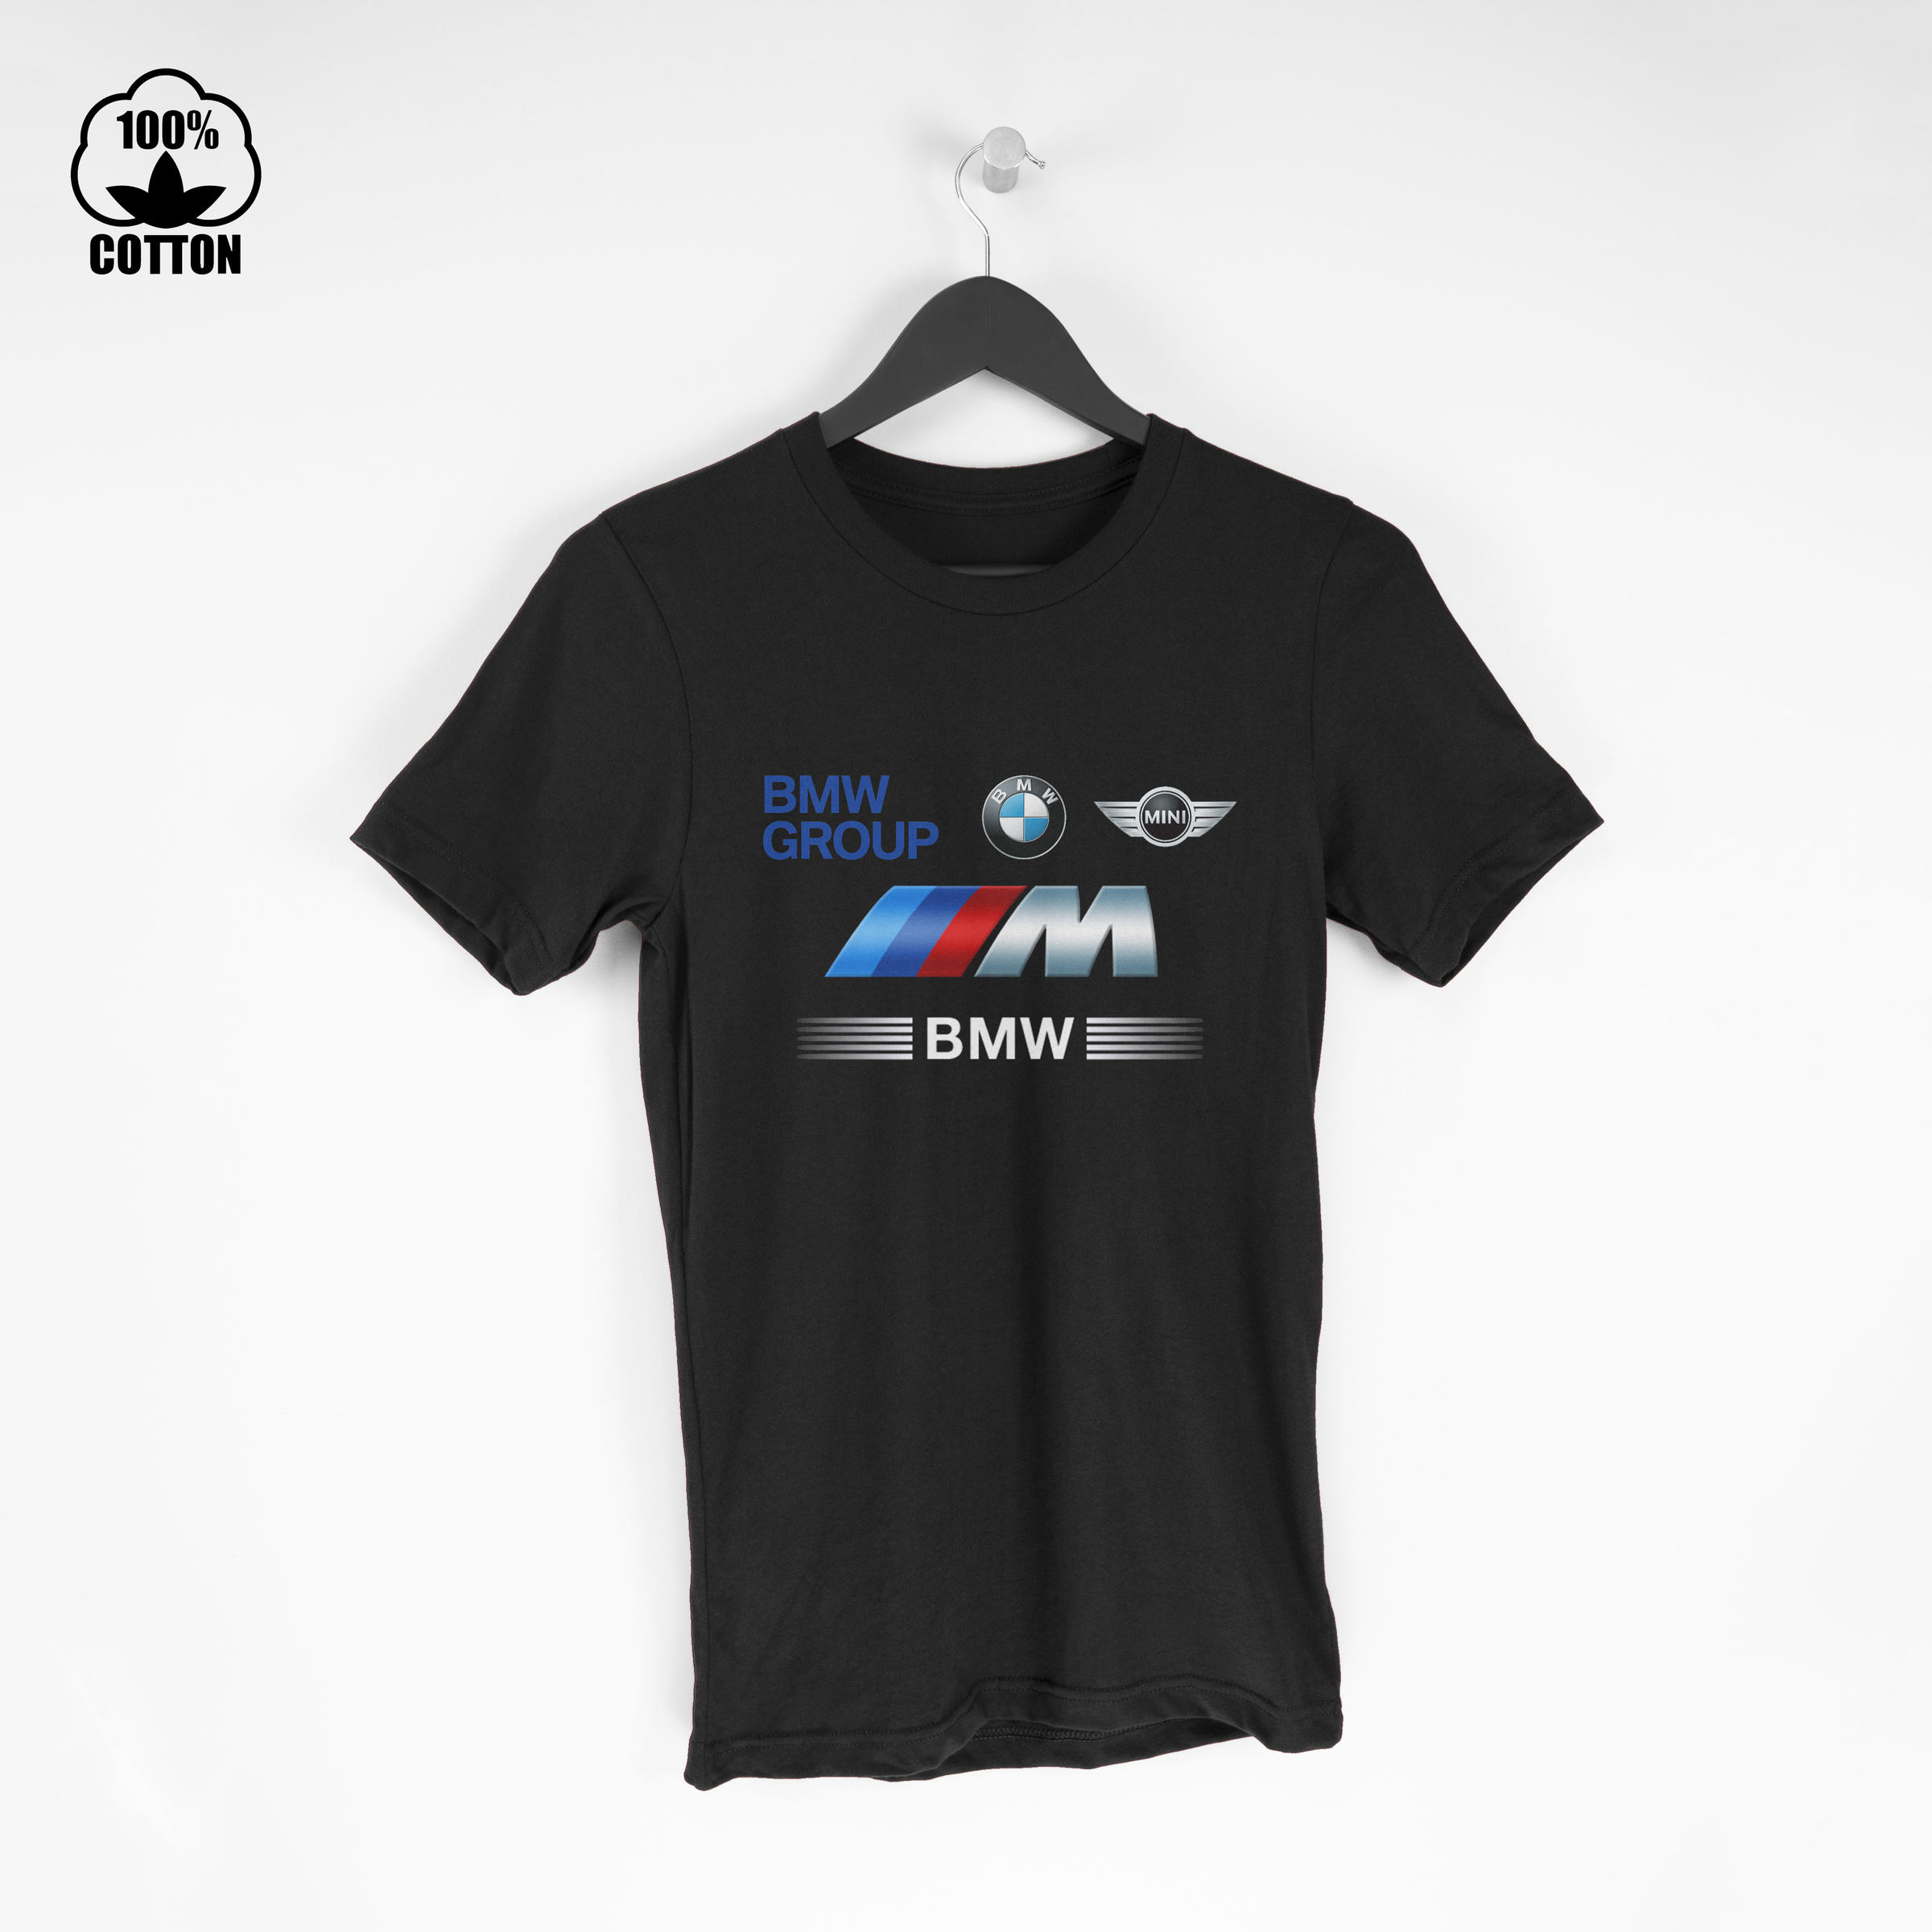 Bmw Grup, Bmw Logo, Bmw Mini, Bmw M3 Men's T-Shirt Tee Black Short Sleeve j.jpg